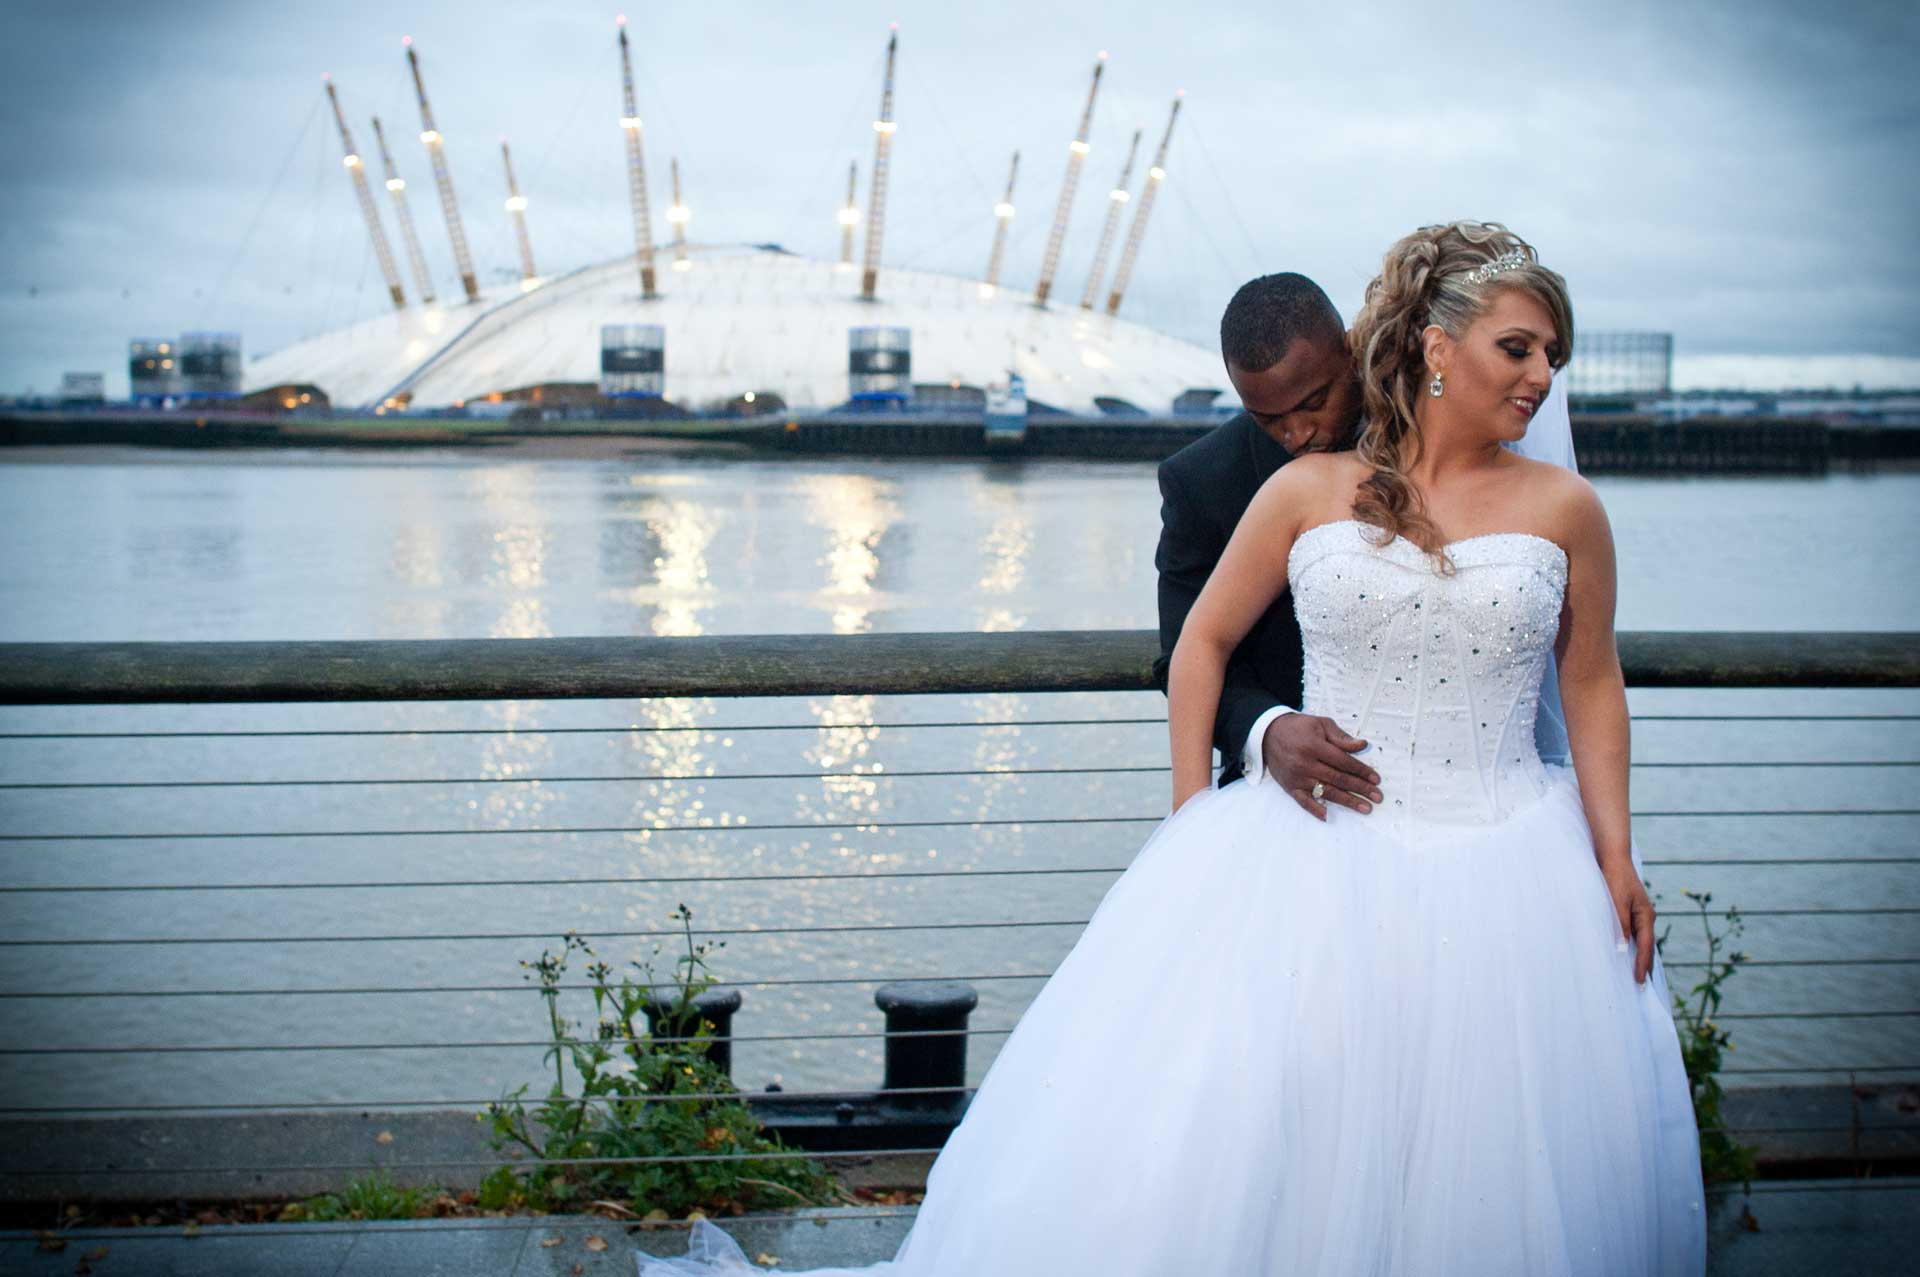 Groom Kisses his bride in front of london millenuium dome